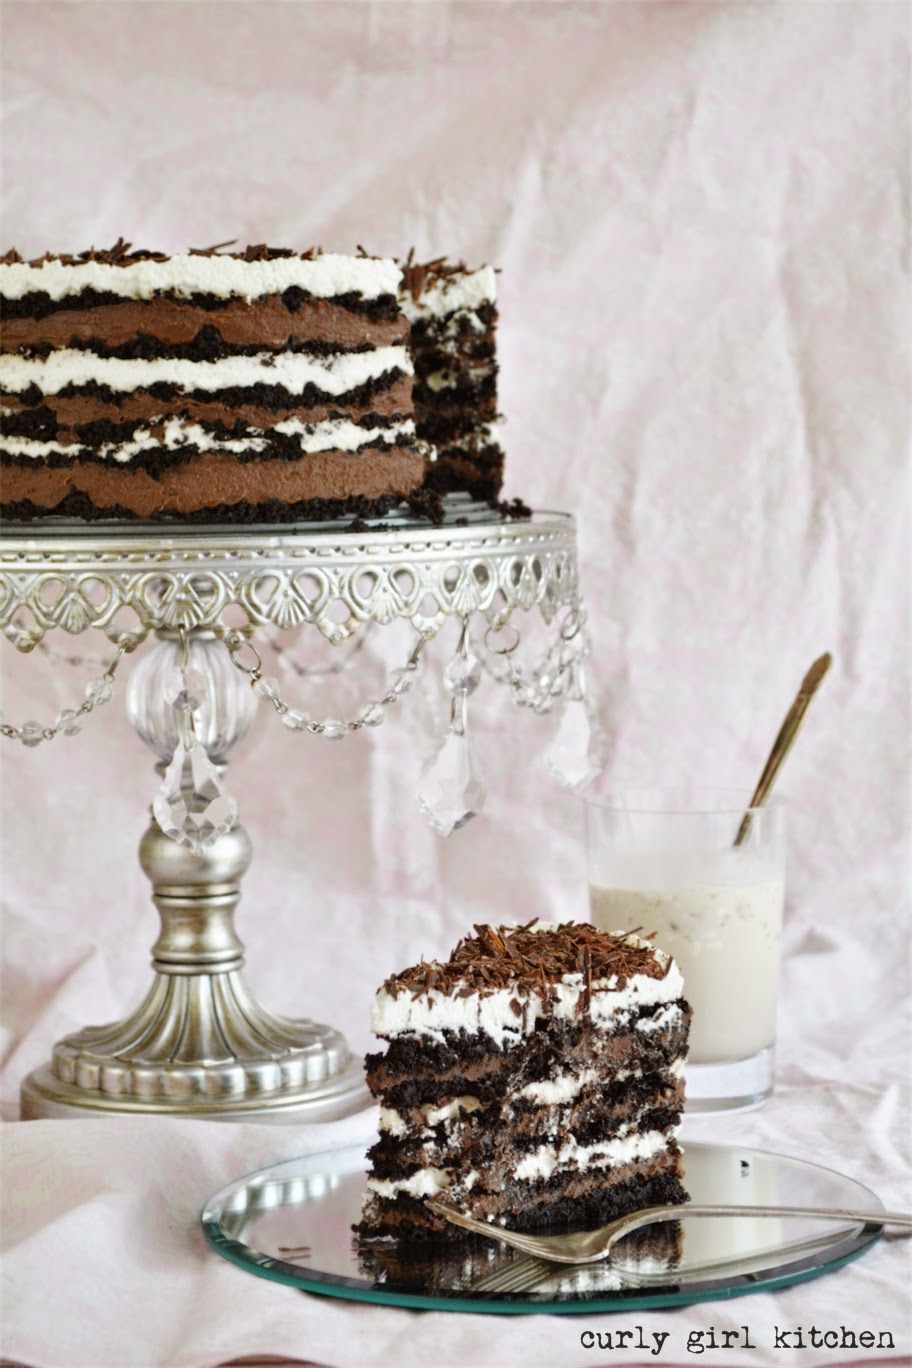 Curly Girl Kitchen: Black and White Russian Icebox Cake